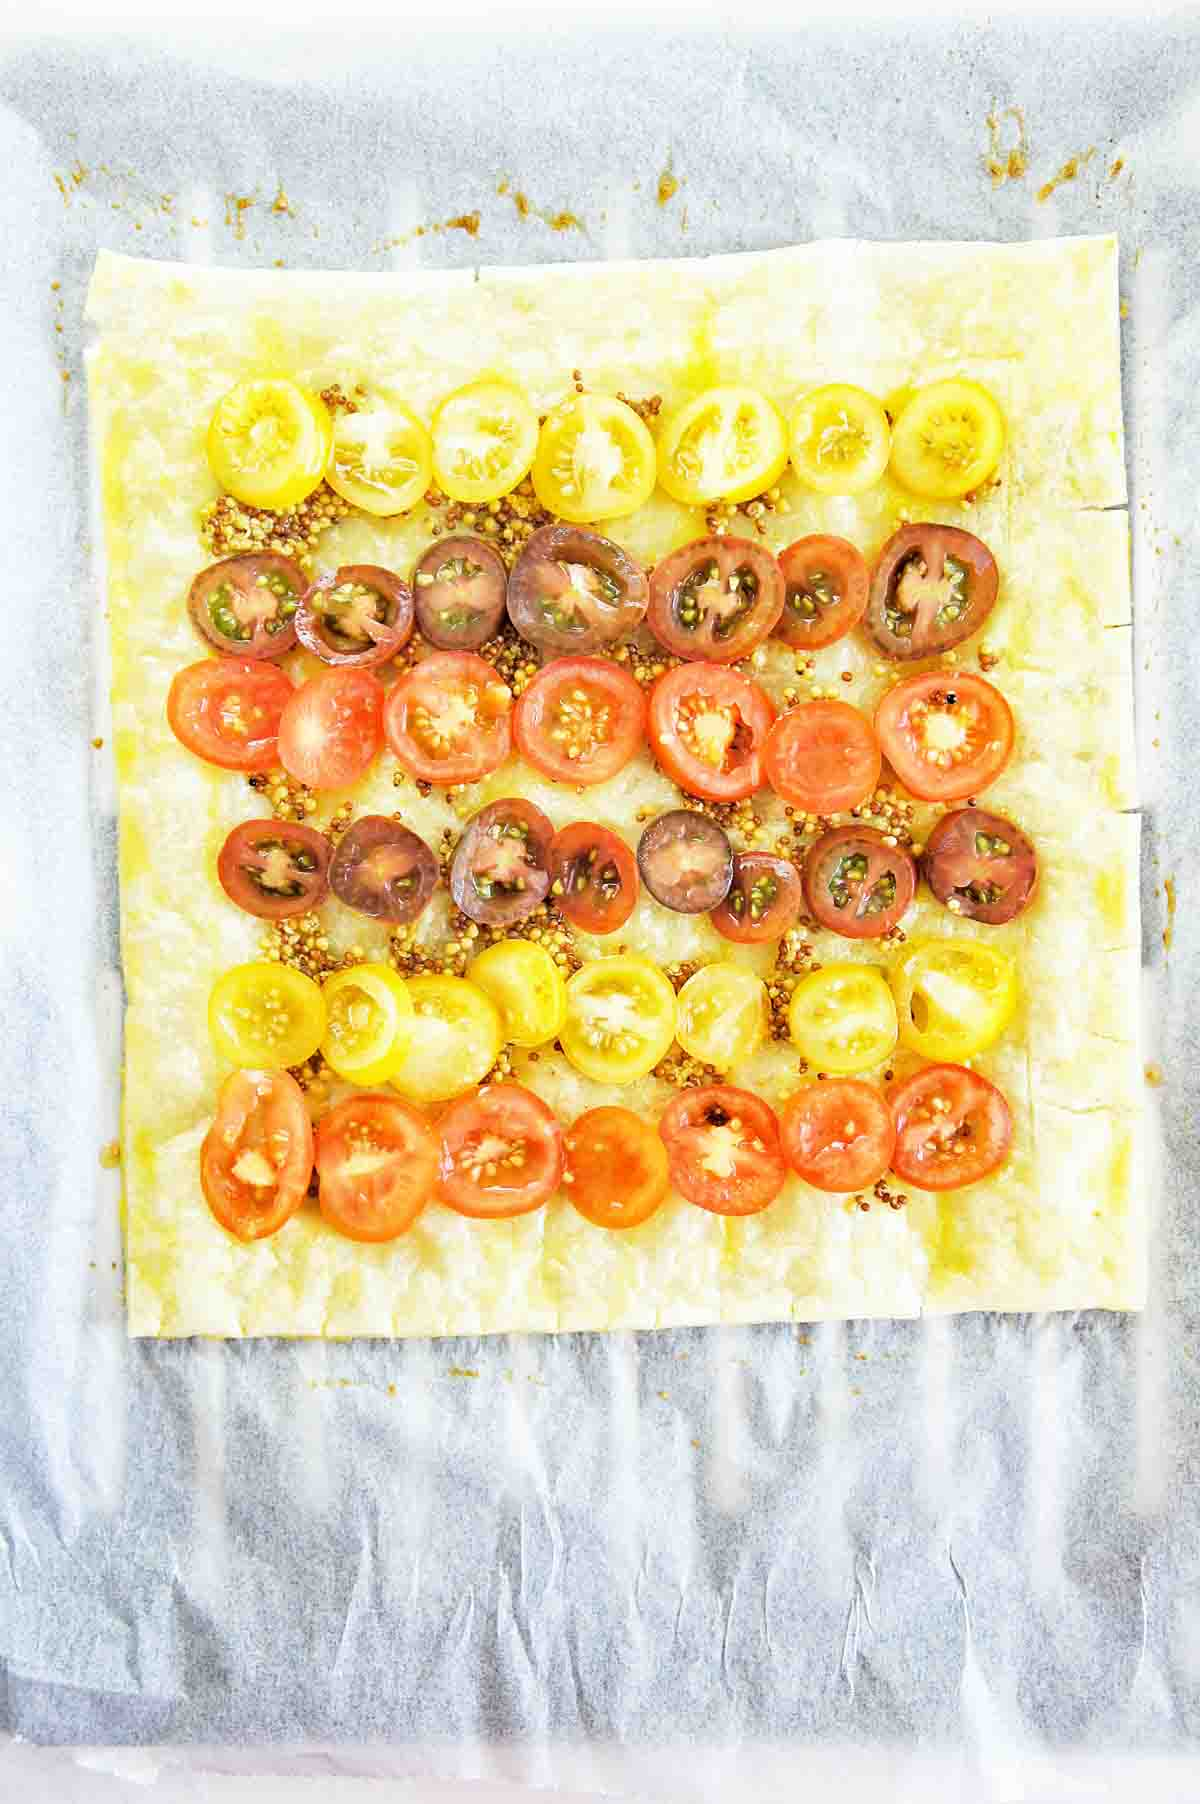 Pastry topped with heirloom tomatoes on a baking tray